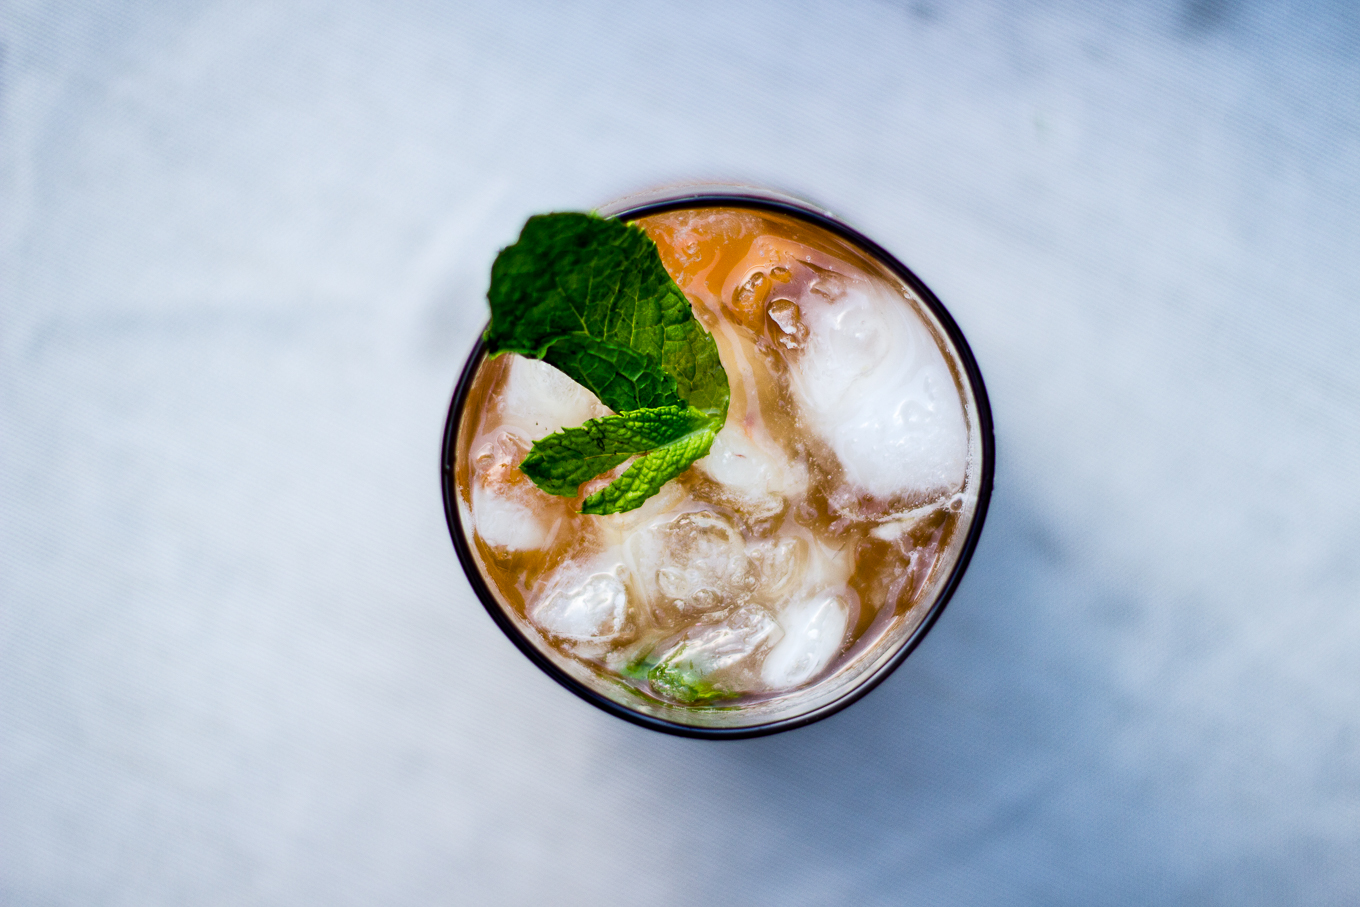 bulleit bourbon, peach cocktails, mint cocktail, mint julep cocktail recipe, how to make a bourbon cocktail